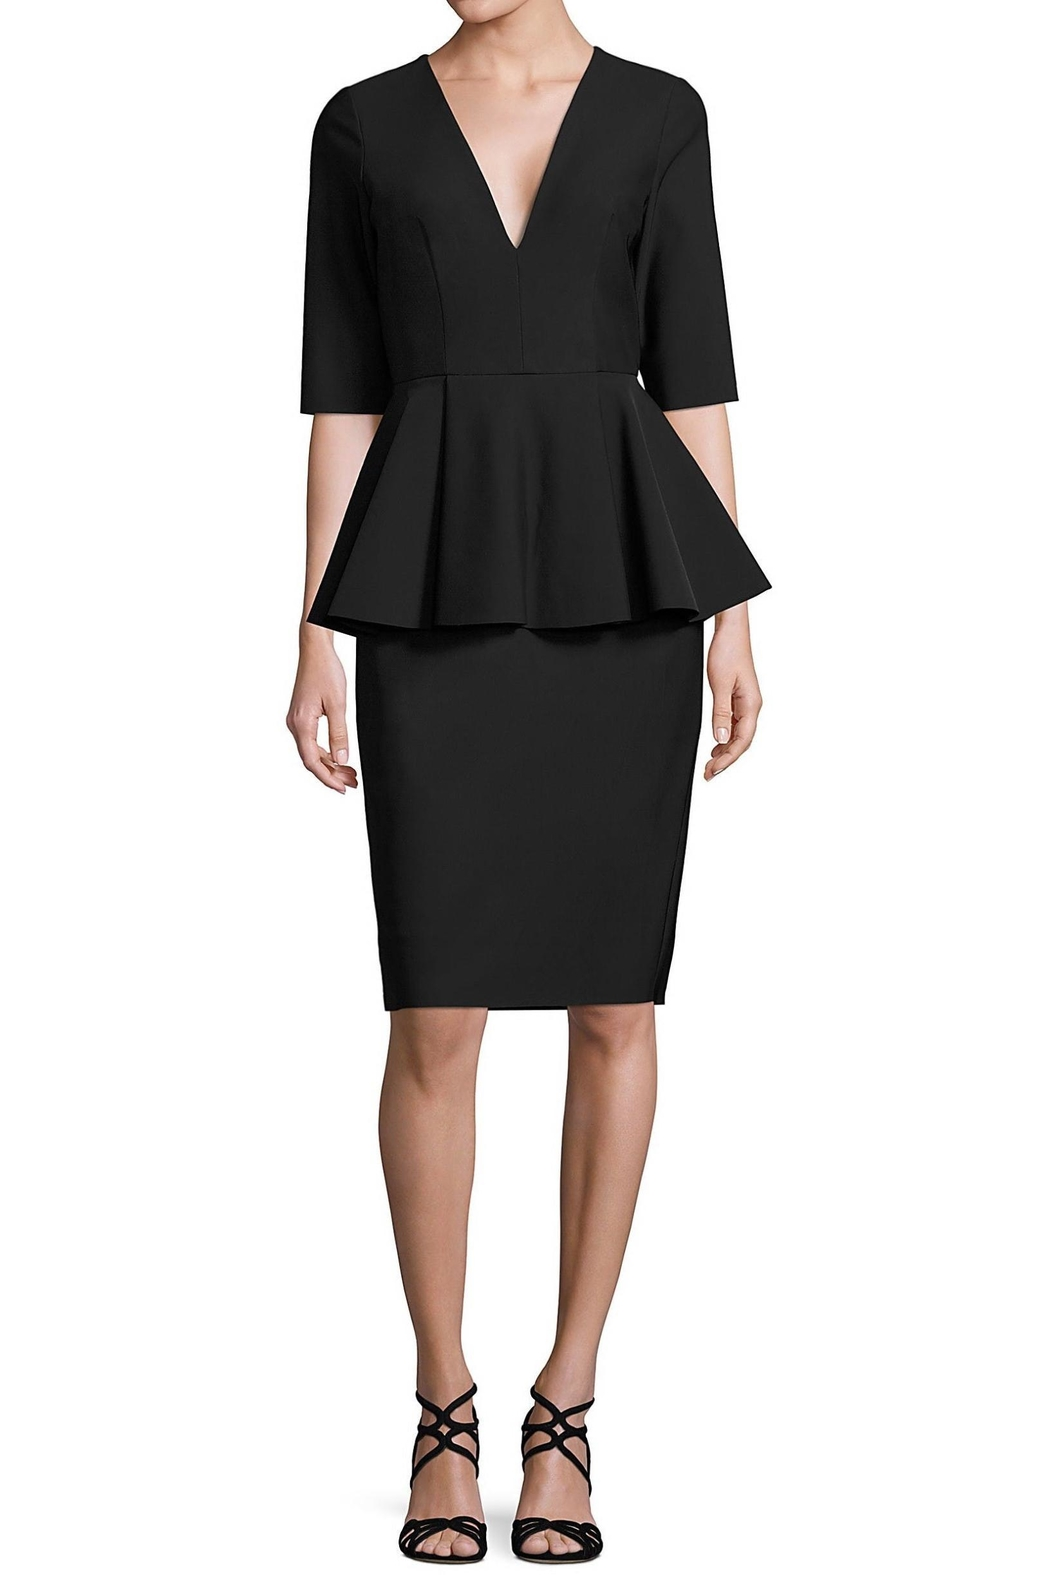 Milly Lola Peplum Dress from Dallas by Pax & Parker — Shoptiques